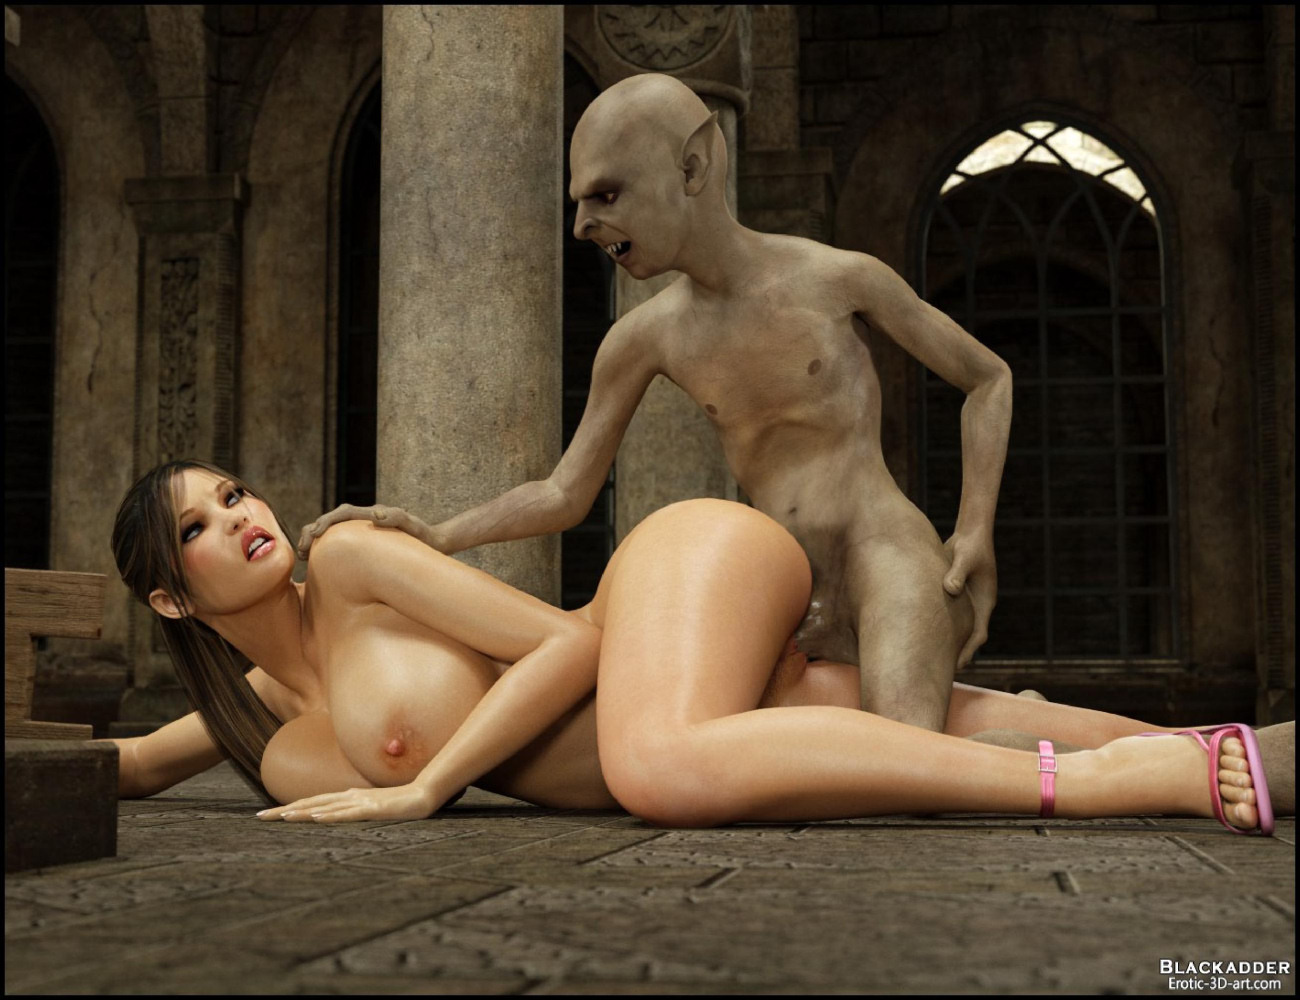 Lasbian vampire sexi video free download erotica photos